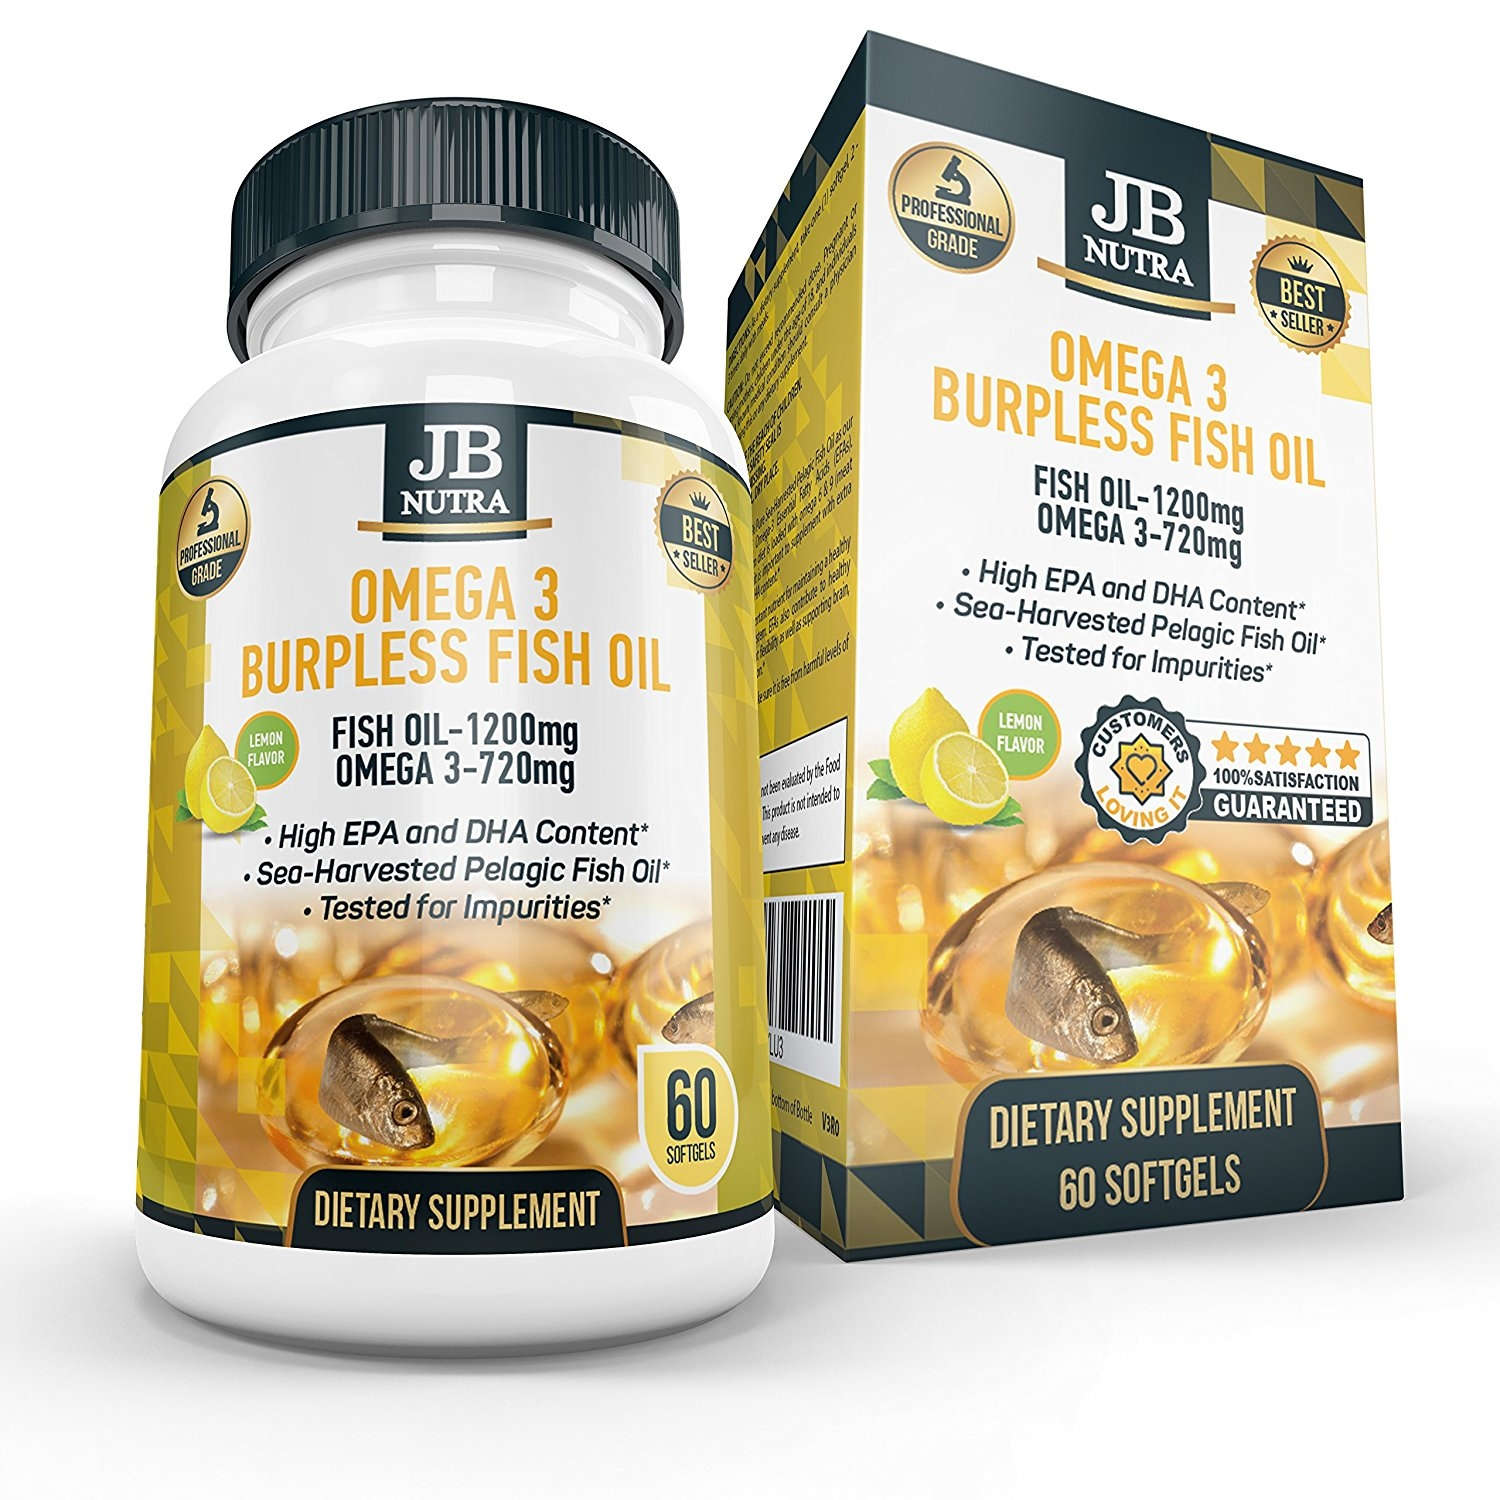 Burpless Fish Oil Supplement, Lemon Scent - Small Softgels - Great Source of Omega 3 For Women and Men